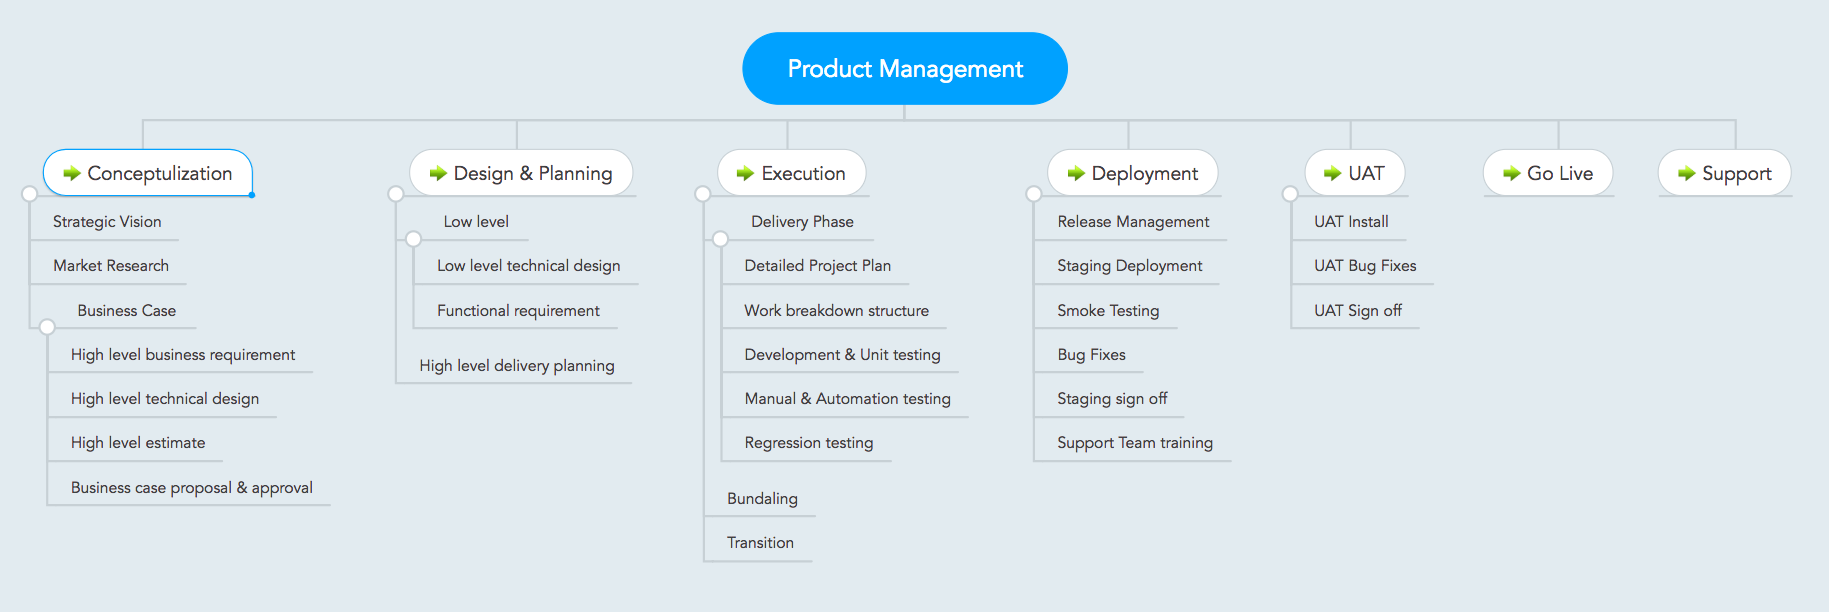 EcobSoft-Product-Management-Lifecycle